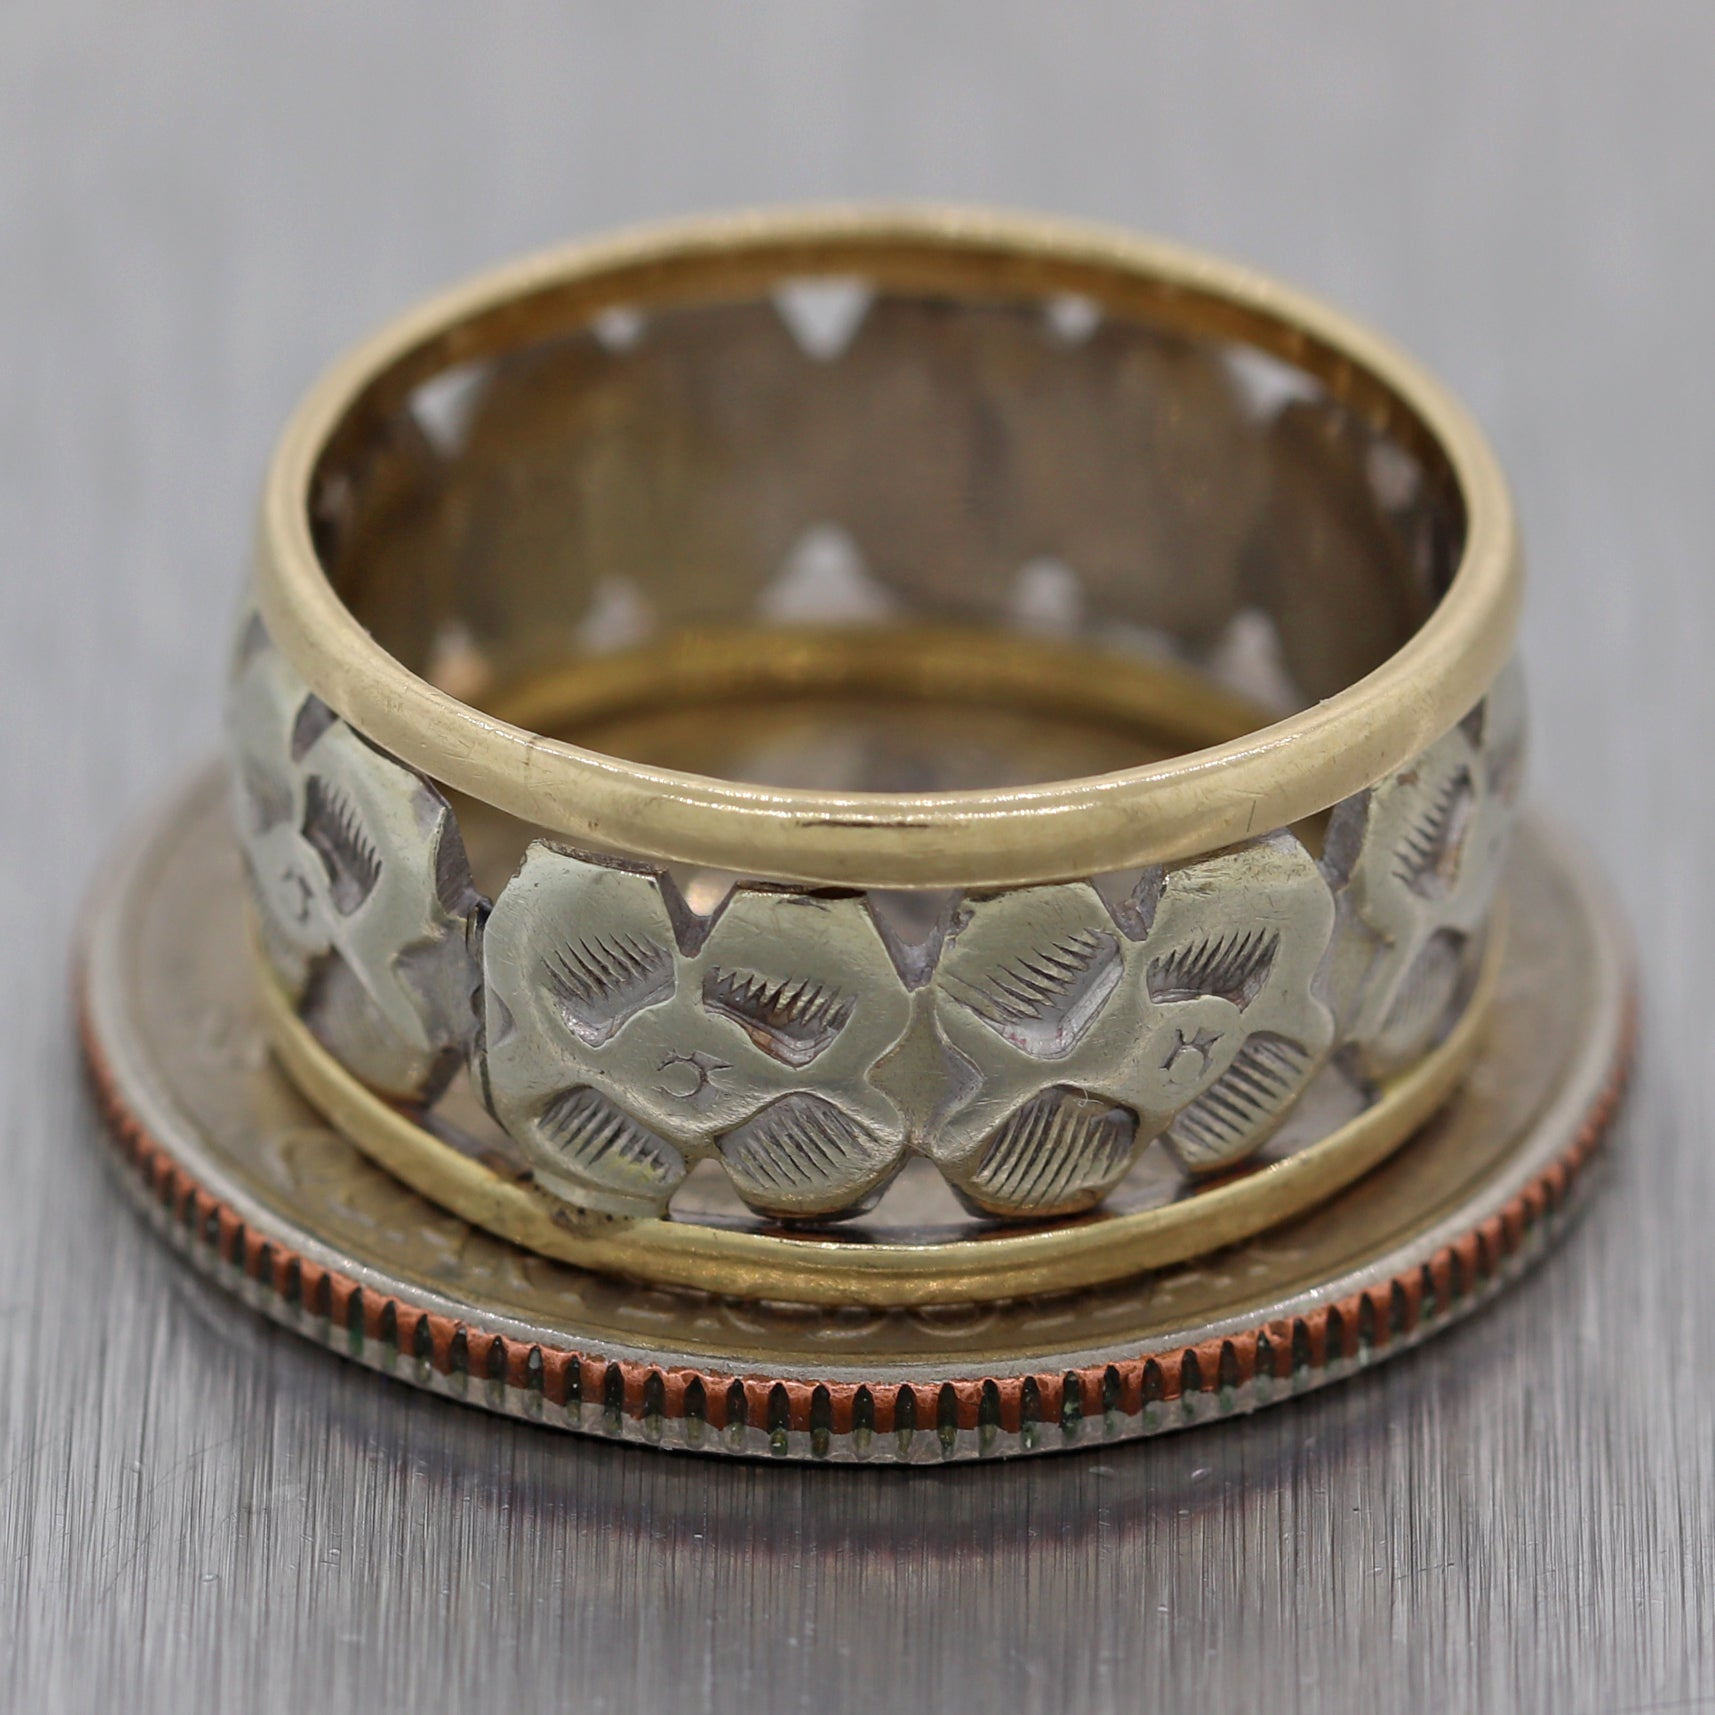 1930 Antique Art Deco 14k White Yellow Gold Engraved Filigree Wedding Band Ring